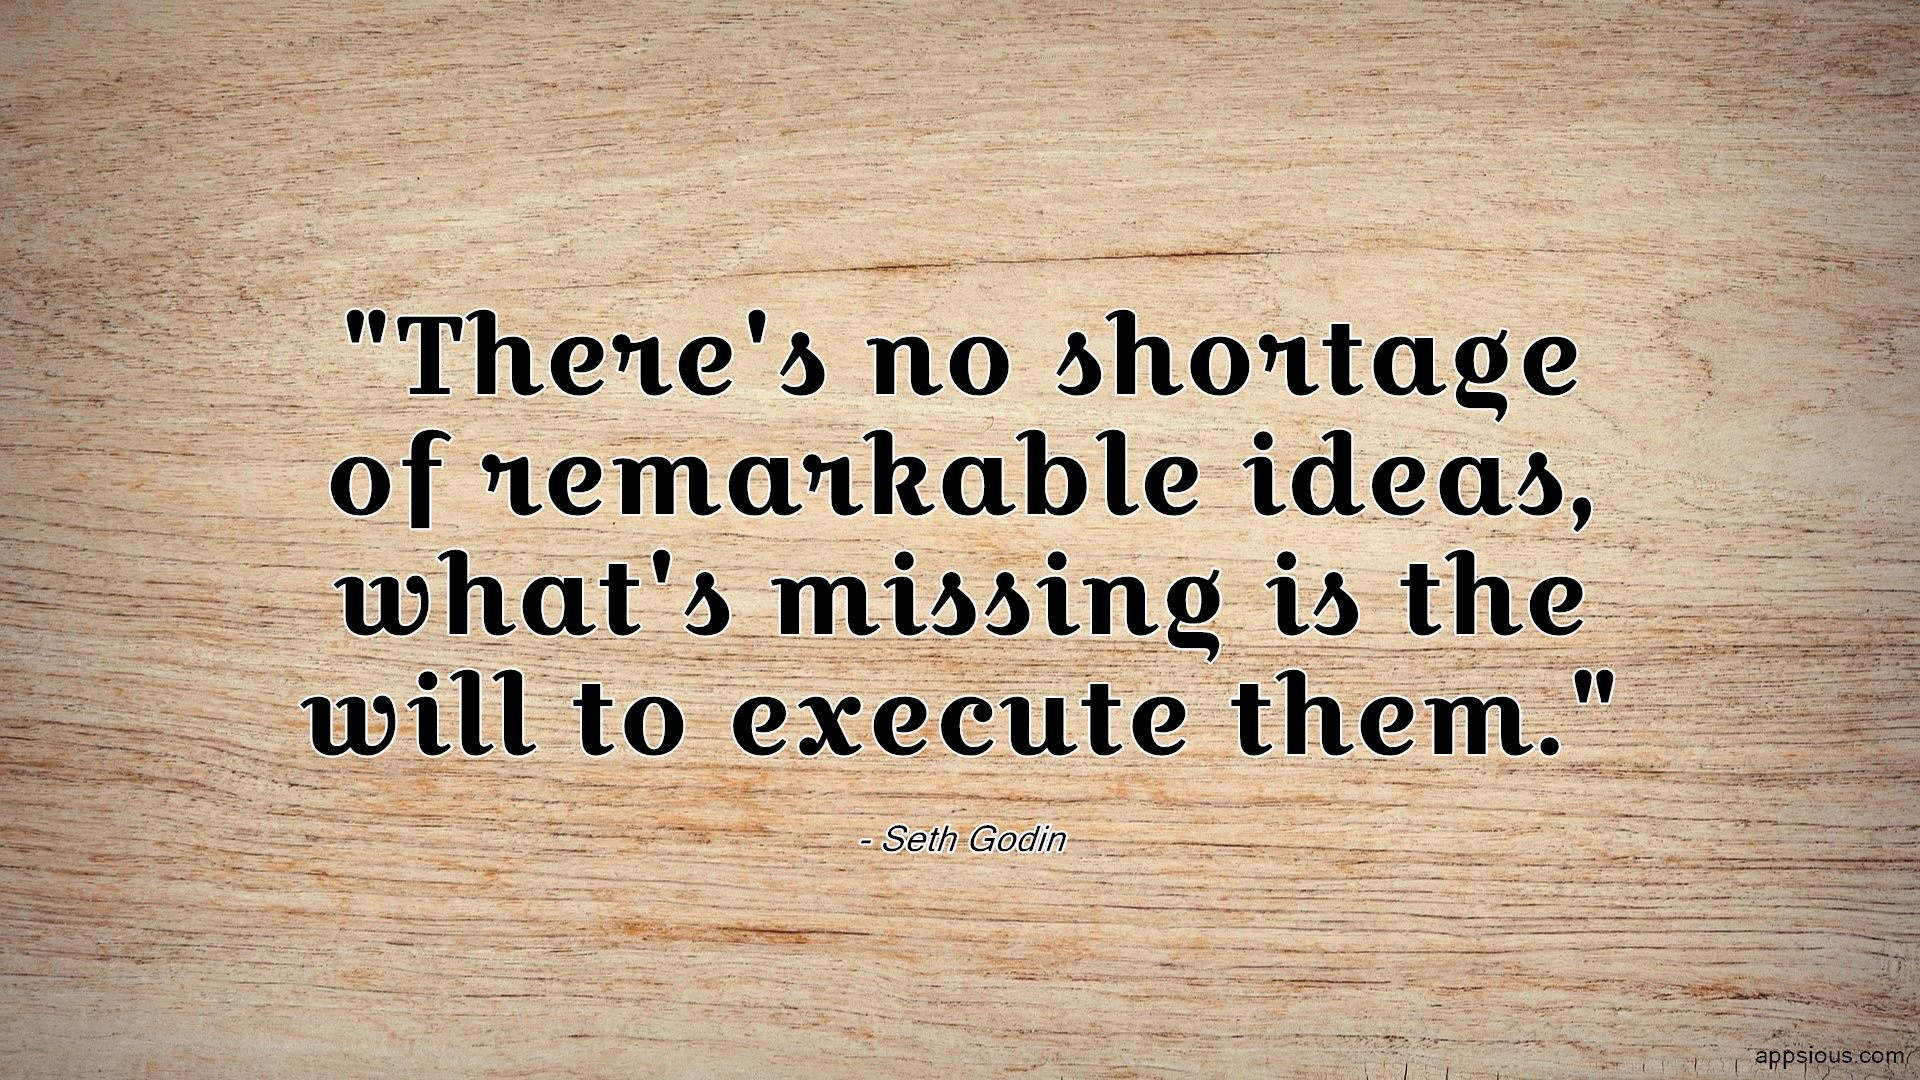 There's no shortage of remarkable ideas, what's missing is the will to execute them.